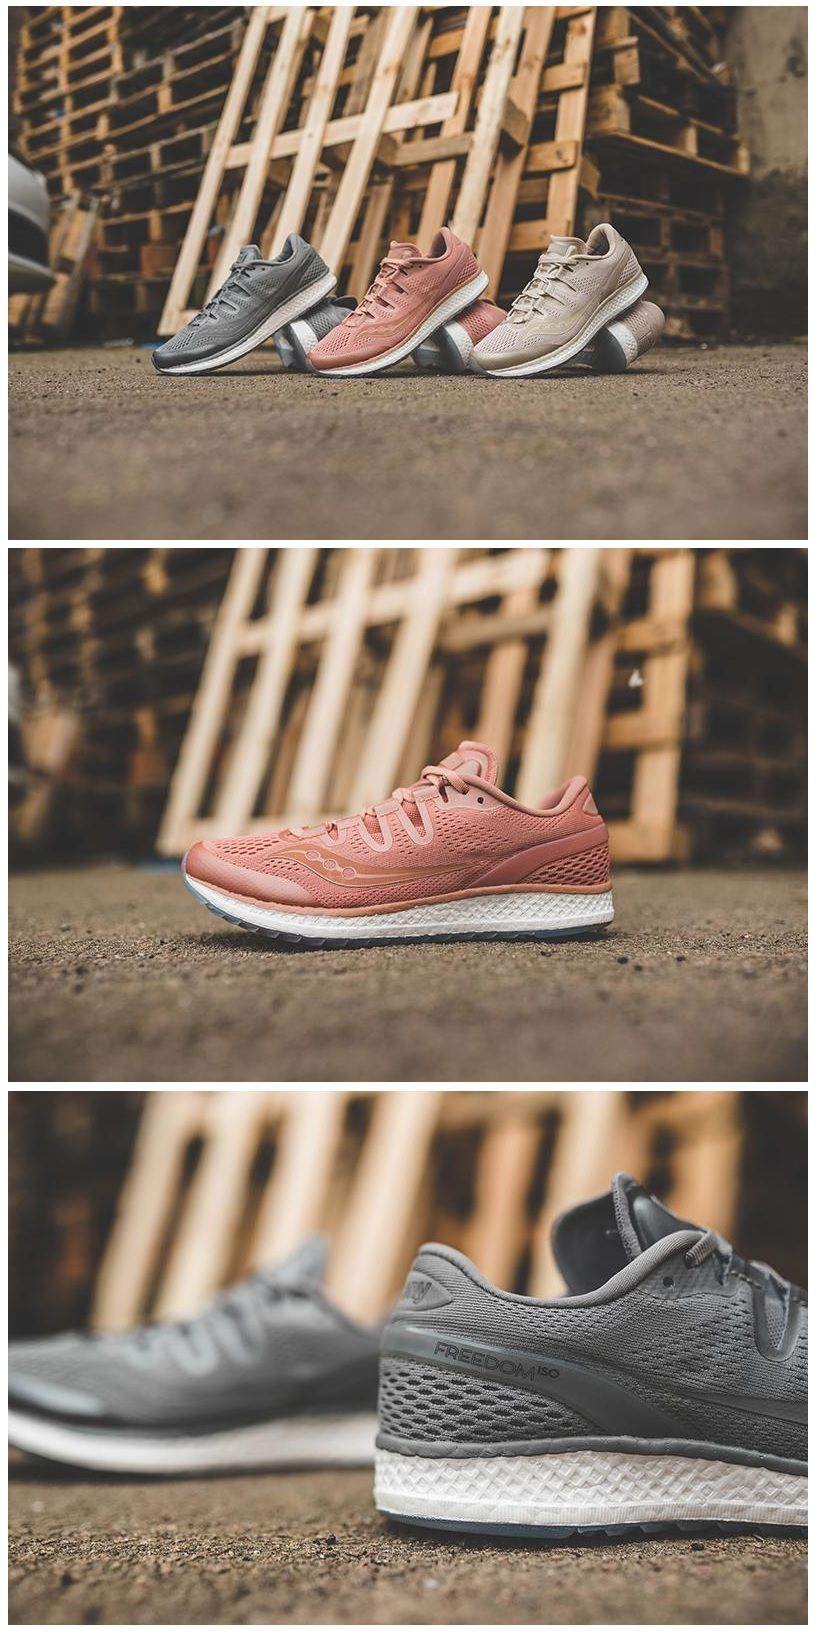 Saucony Freedom Iso Track And Field Shoes Running Sneakers Saucony